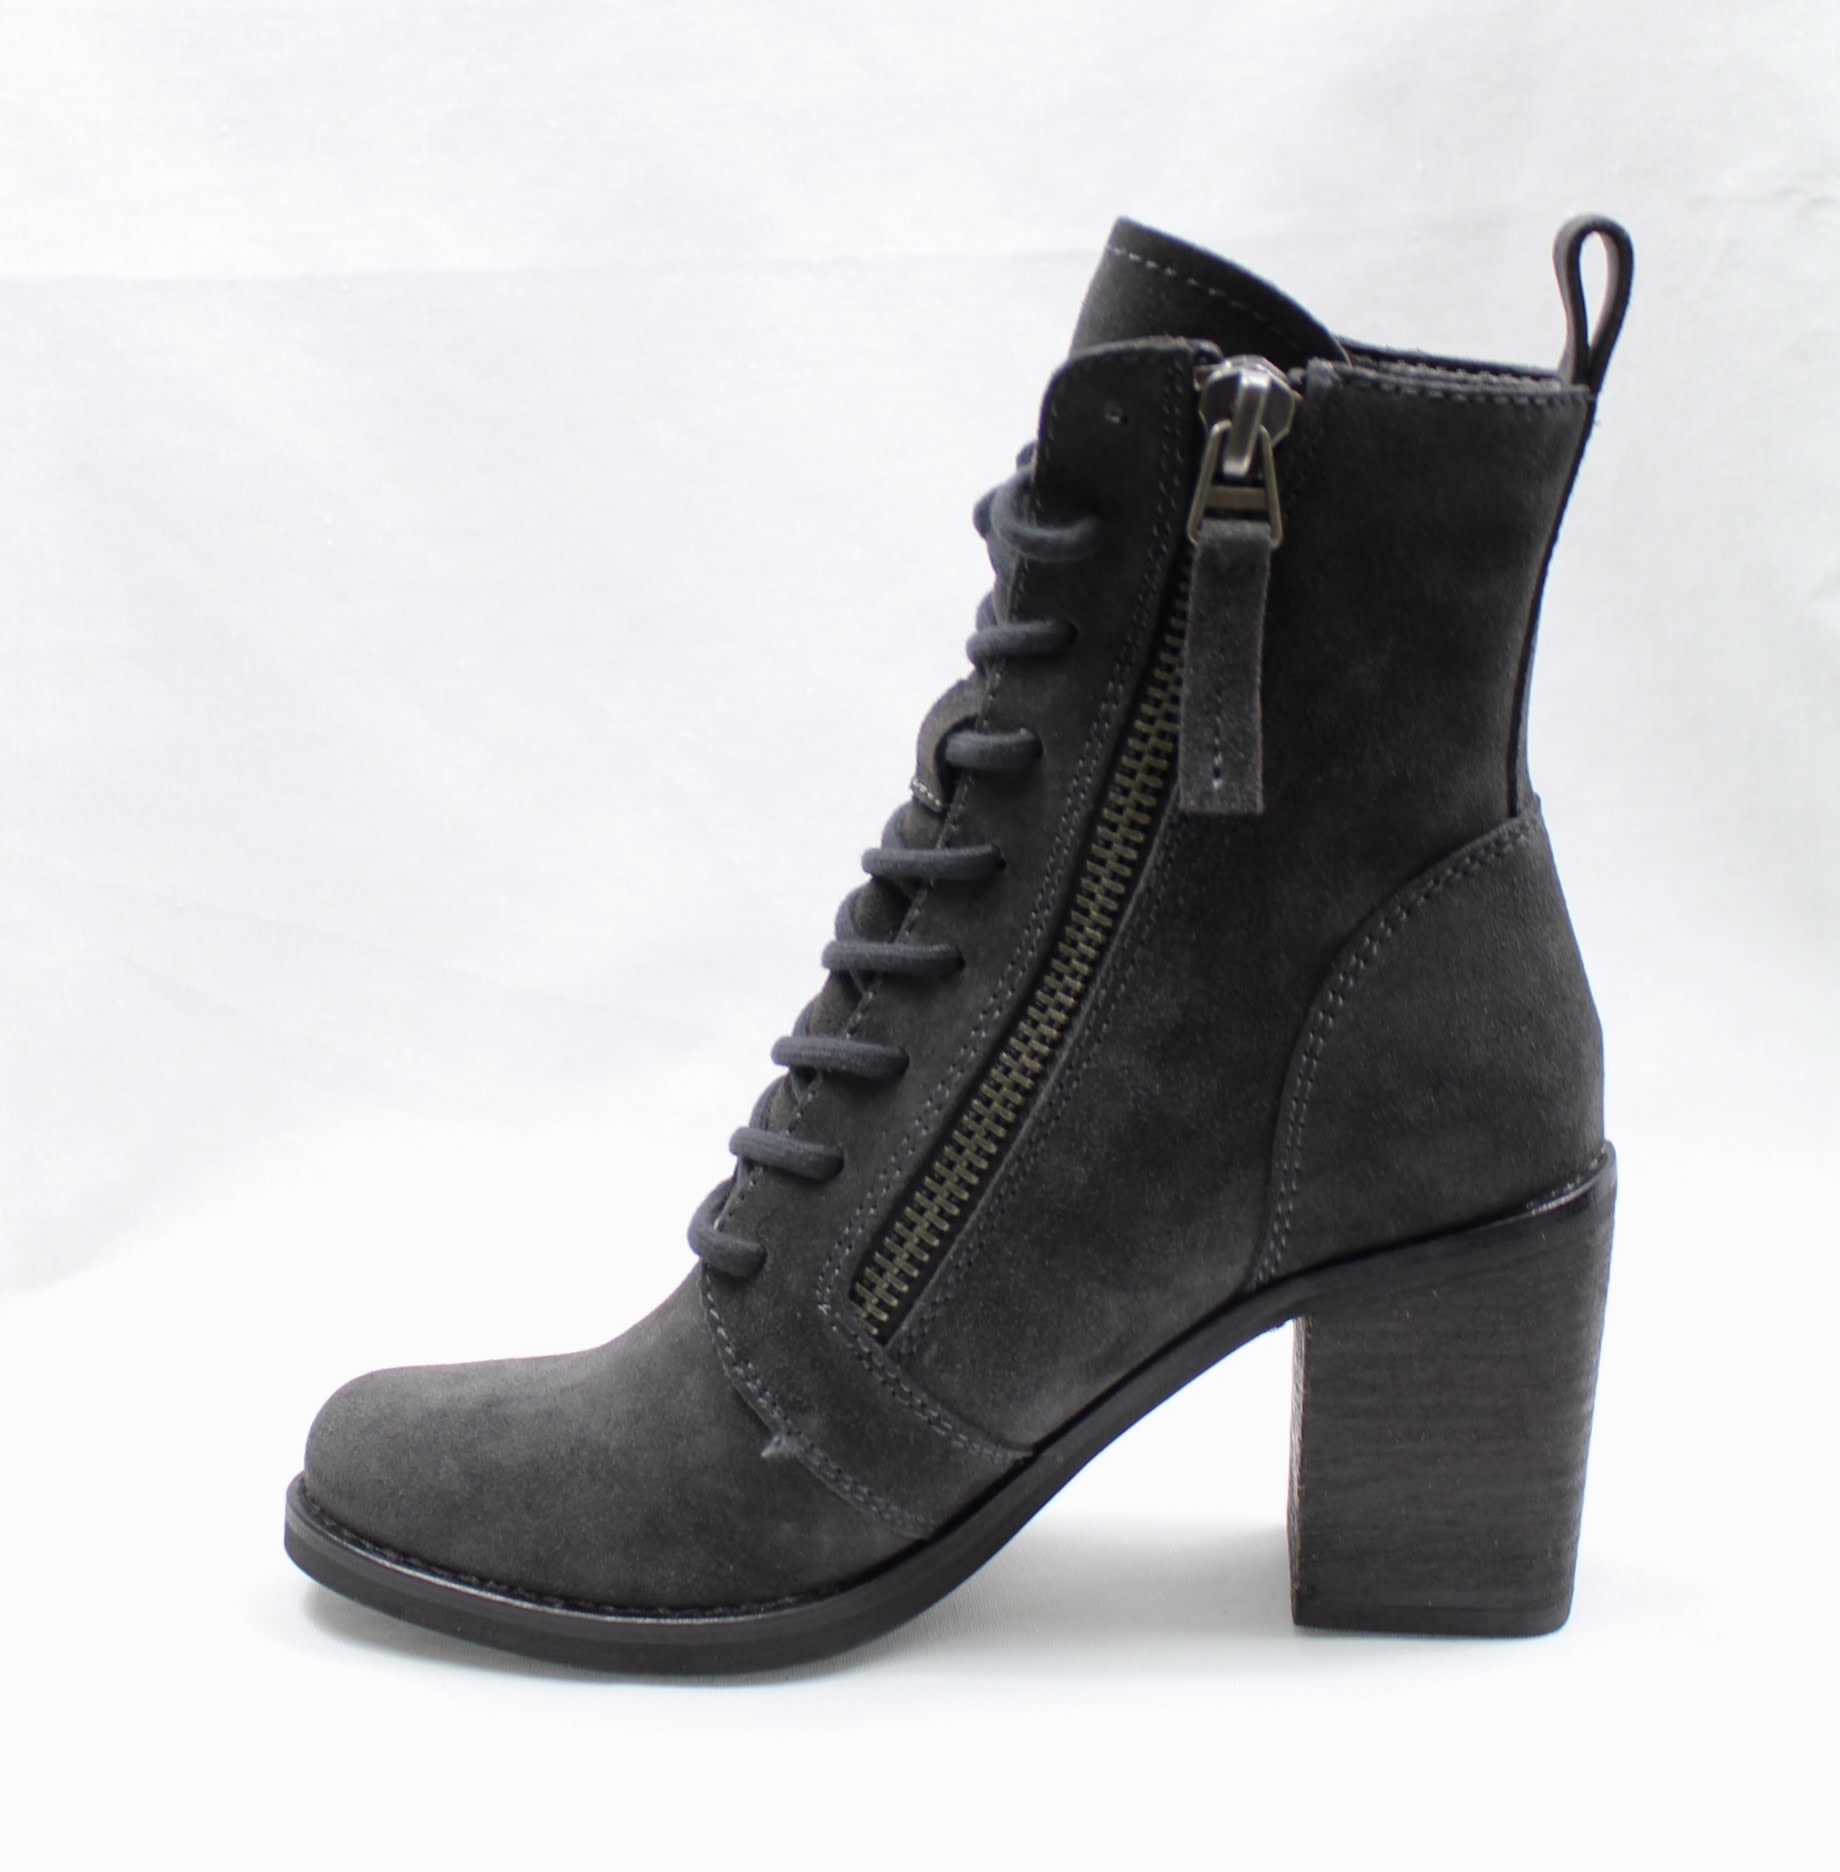 """DOLCE VITA DOLCE VITA """"LELA"""" Anthracite (Grey) Suede Lace-Up Boot"""